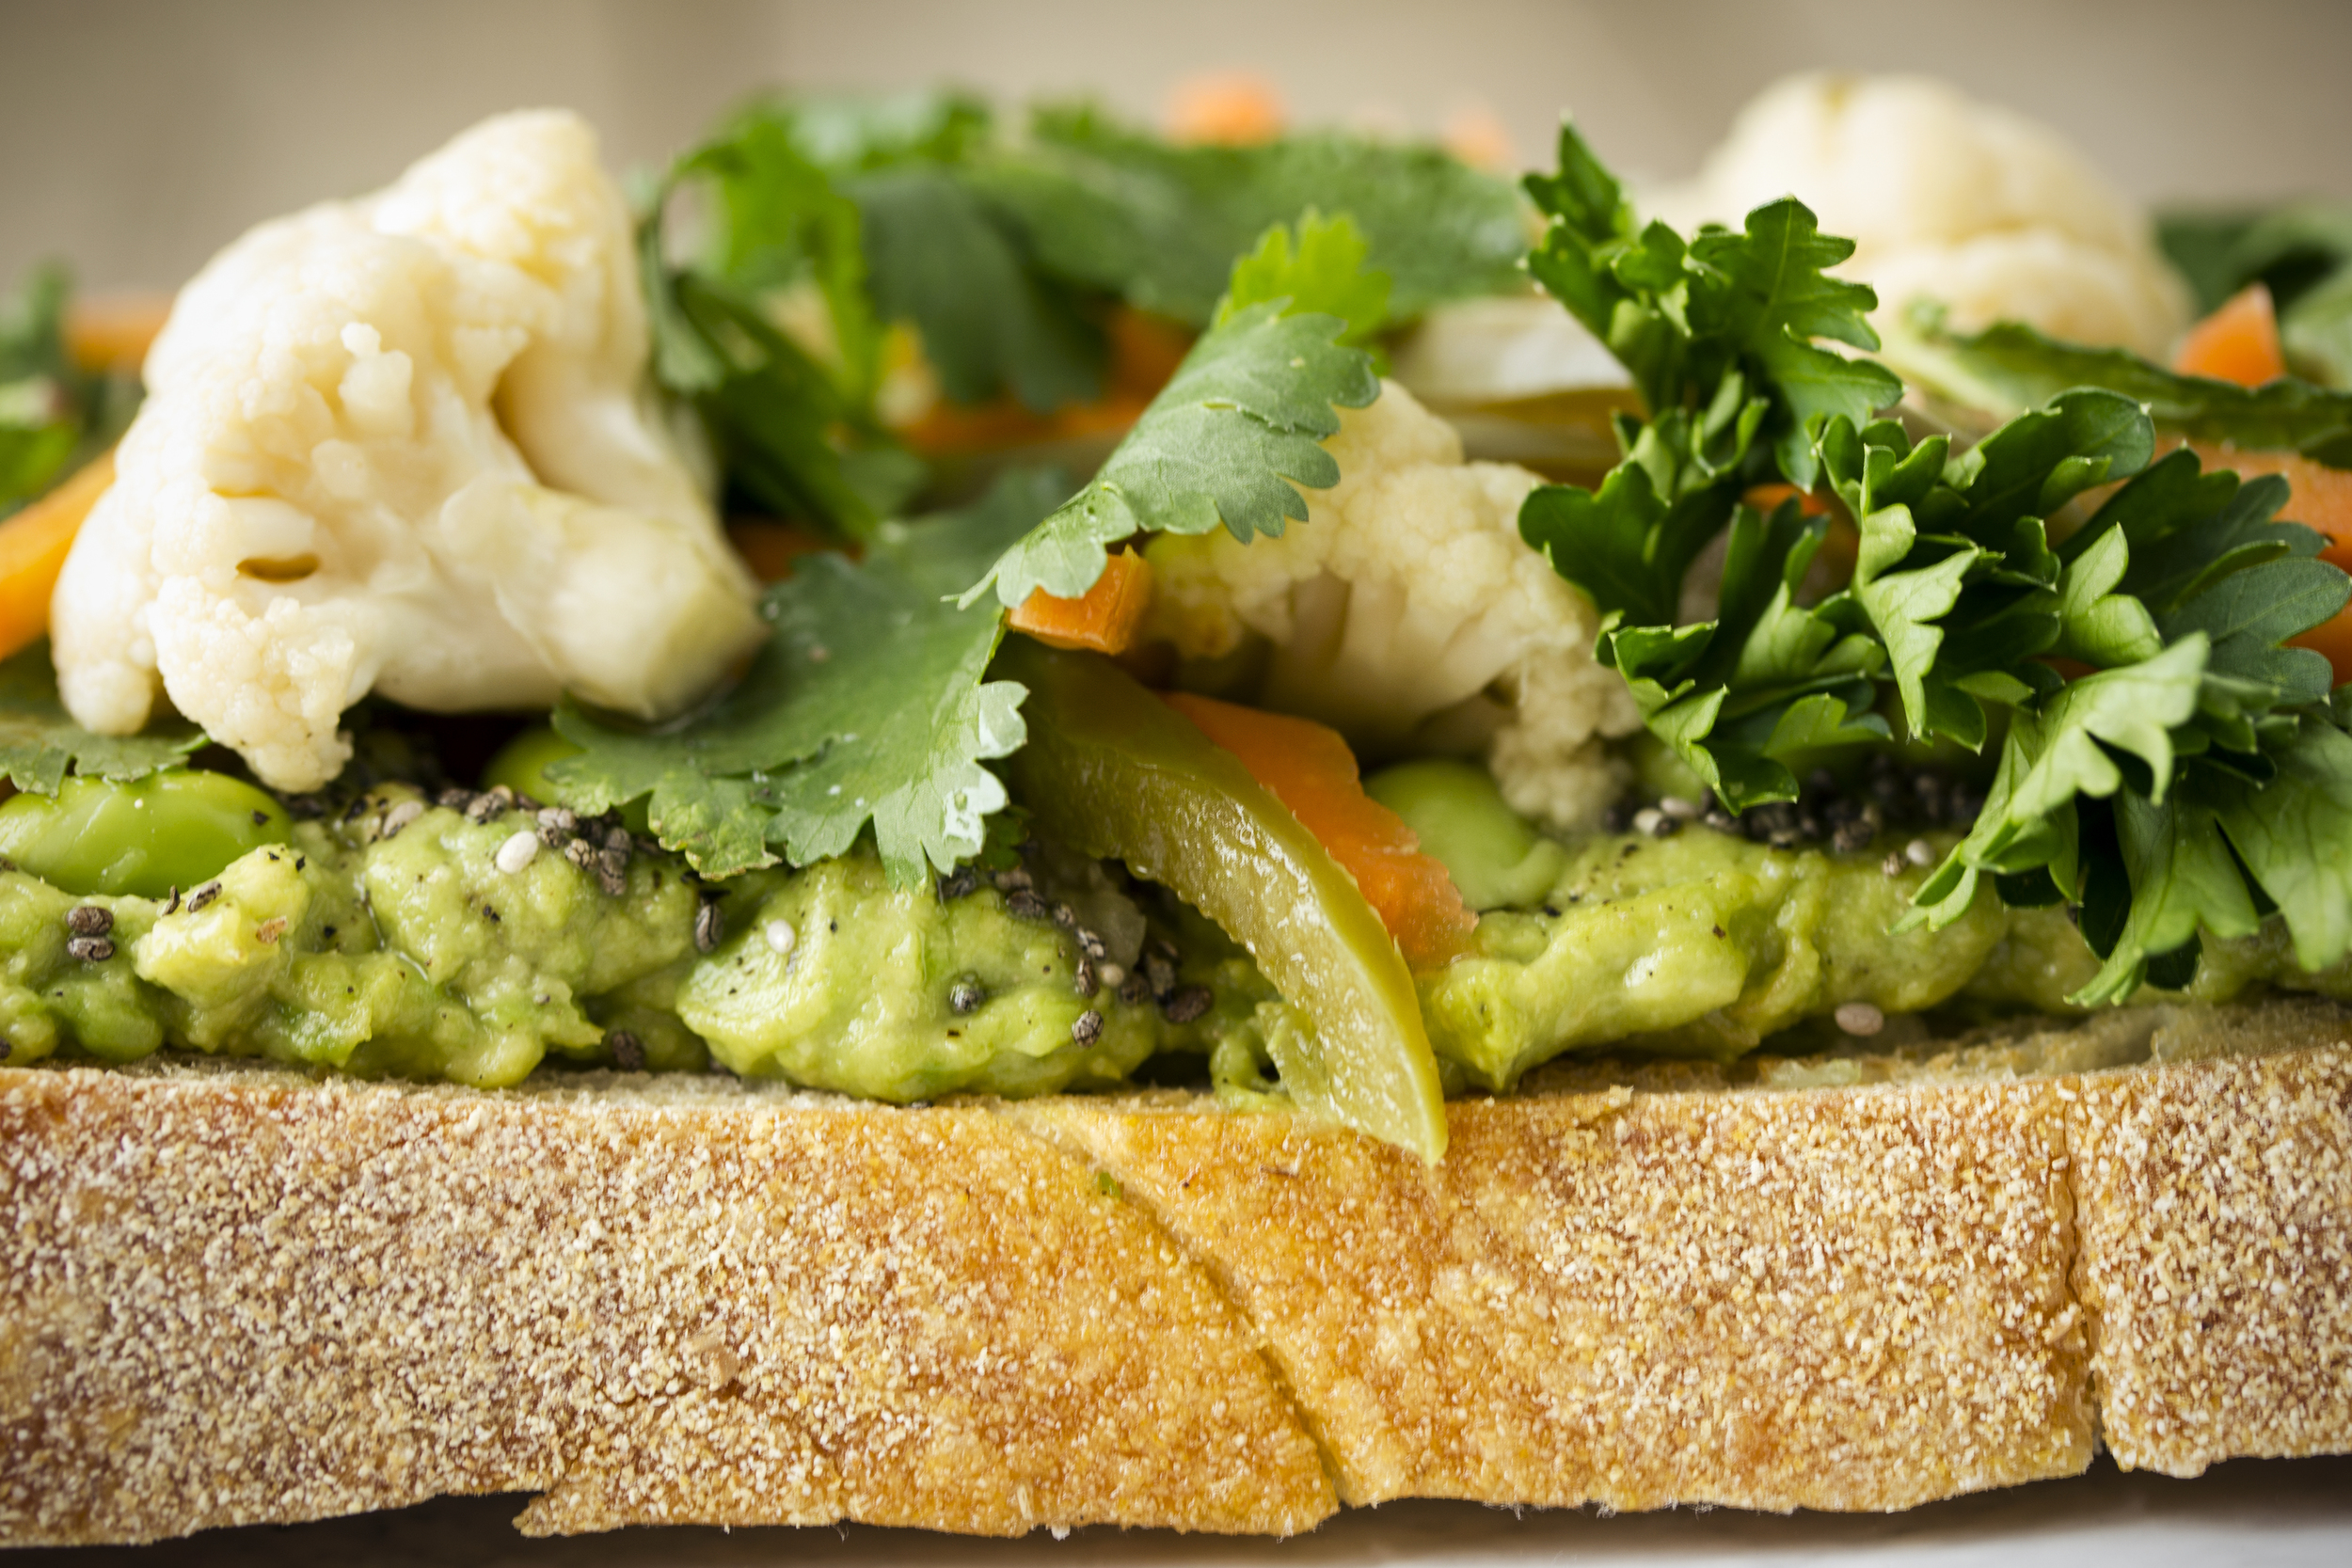 Kicked-up Avocado Toast with Spicy Pickled Veggies